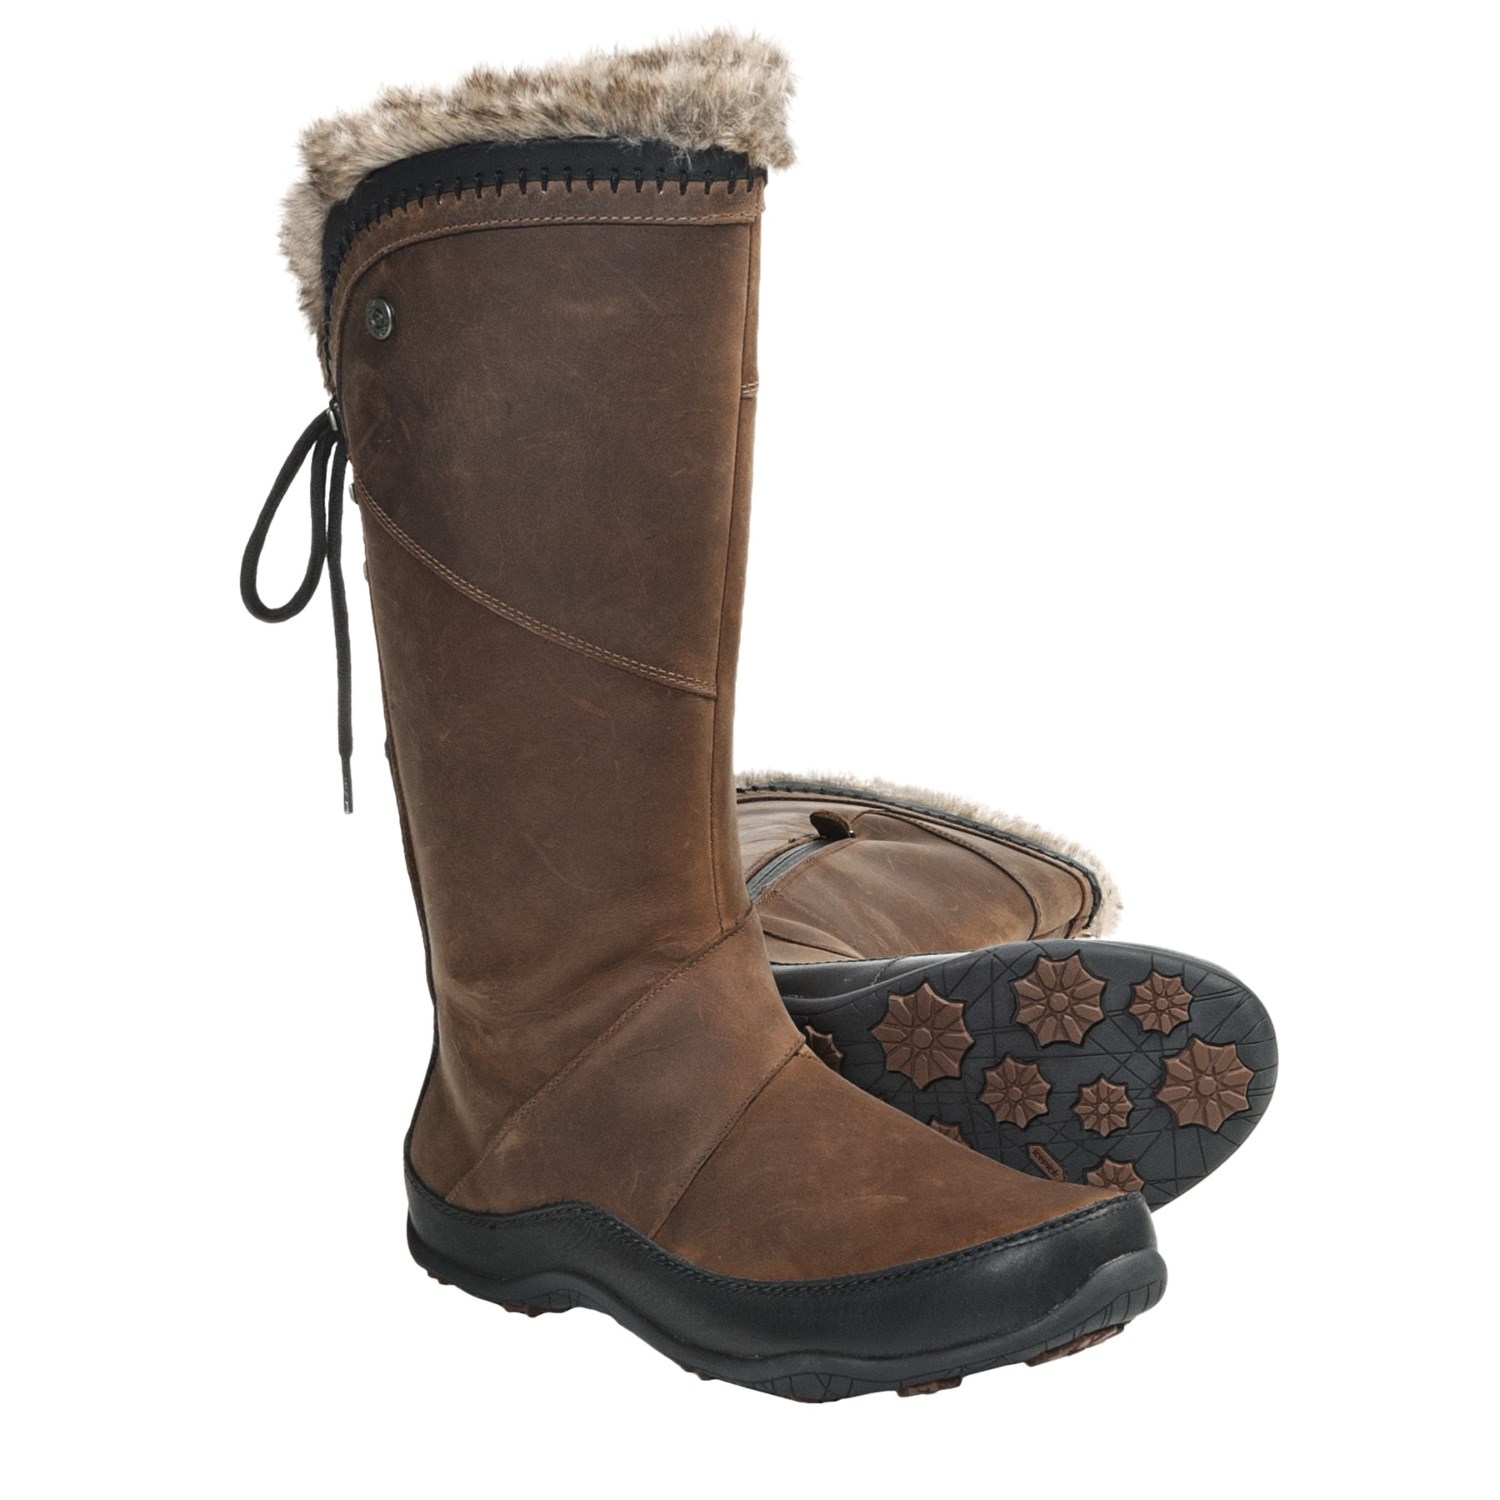 Popular Boots Amp Shoes  Women39s Boots Amp Shoes  Winter Amp Snow Boots